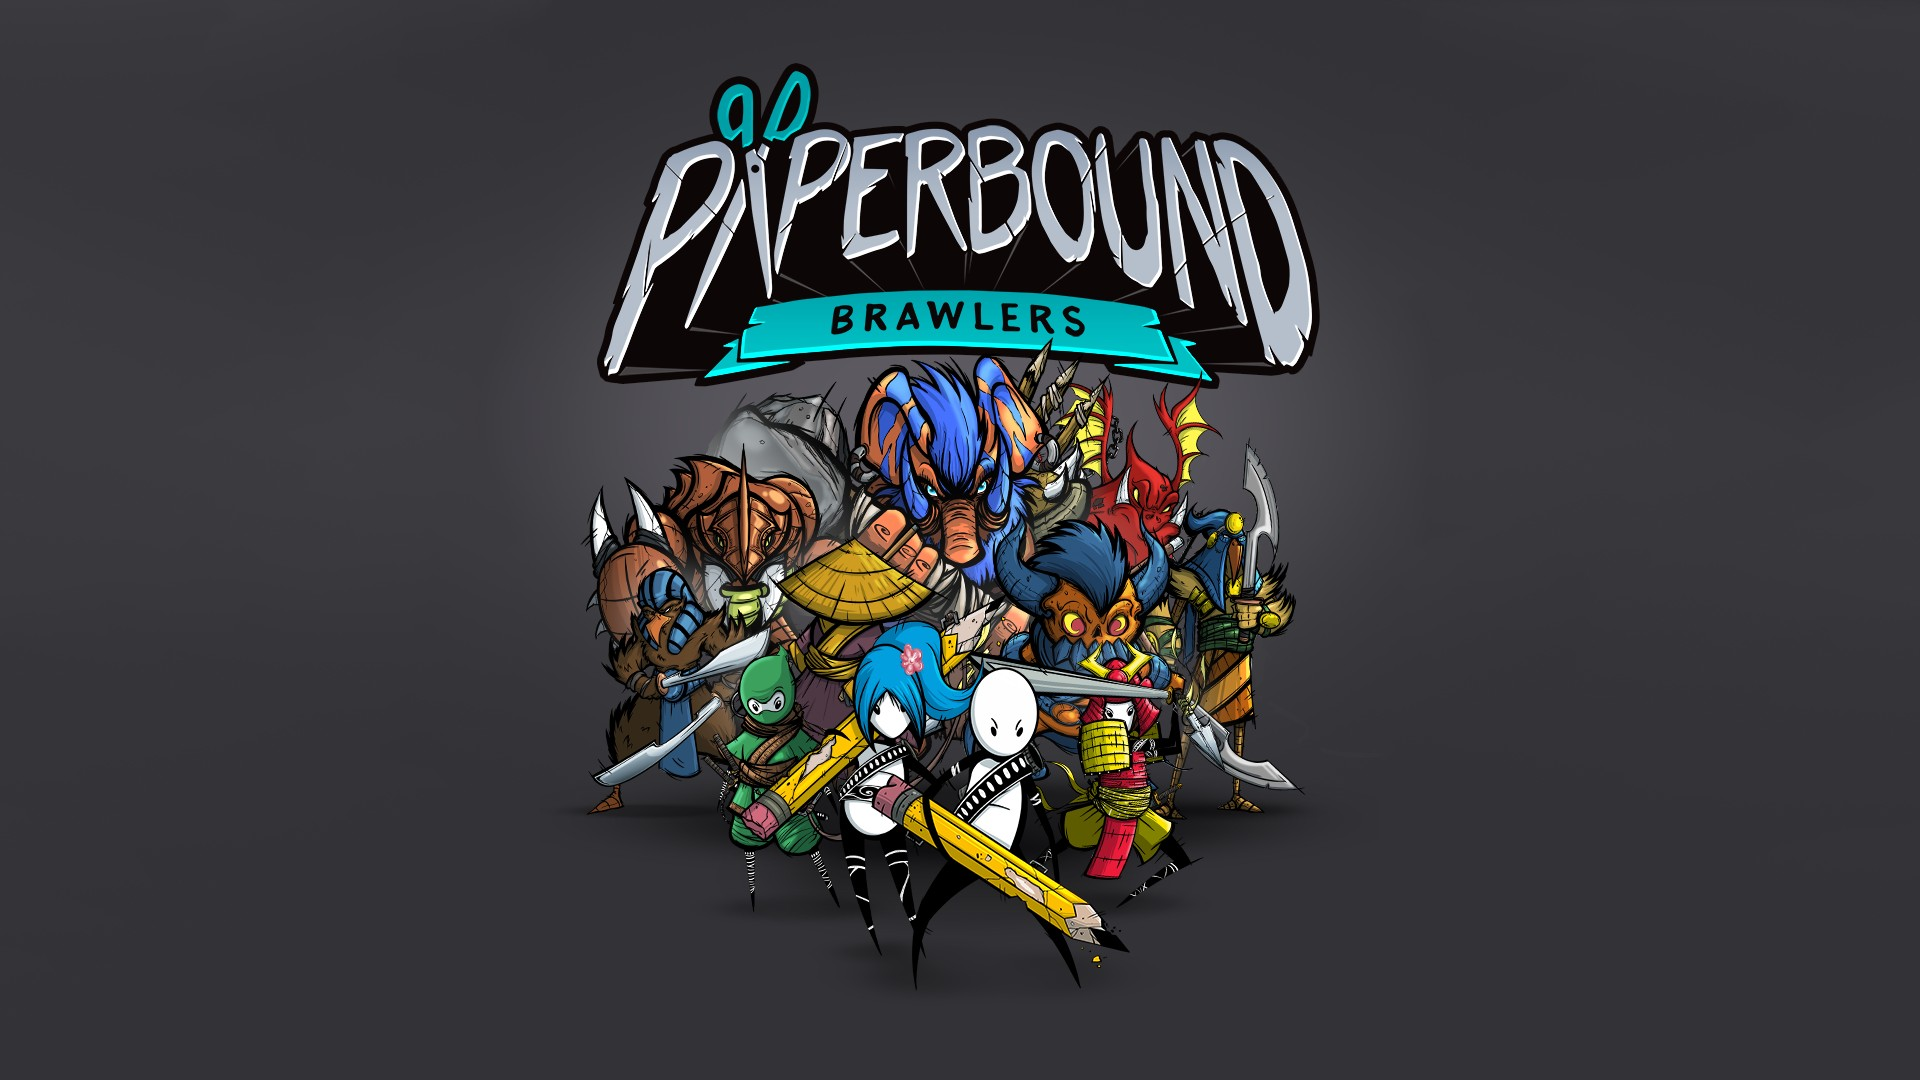 Video For Paperbound Brawlers: A Seven-Year Story in Seven Paragraphs